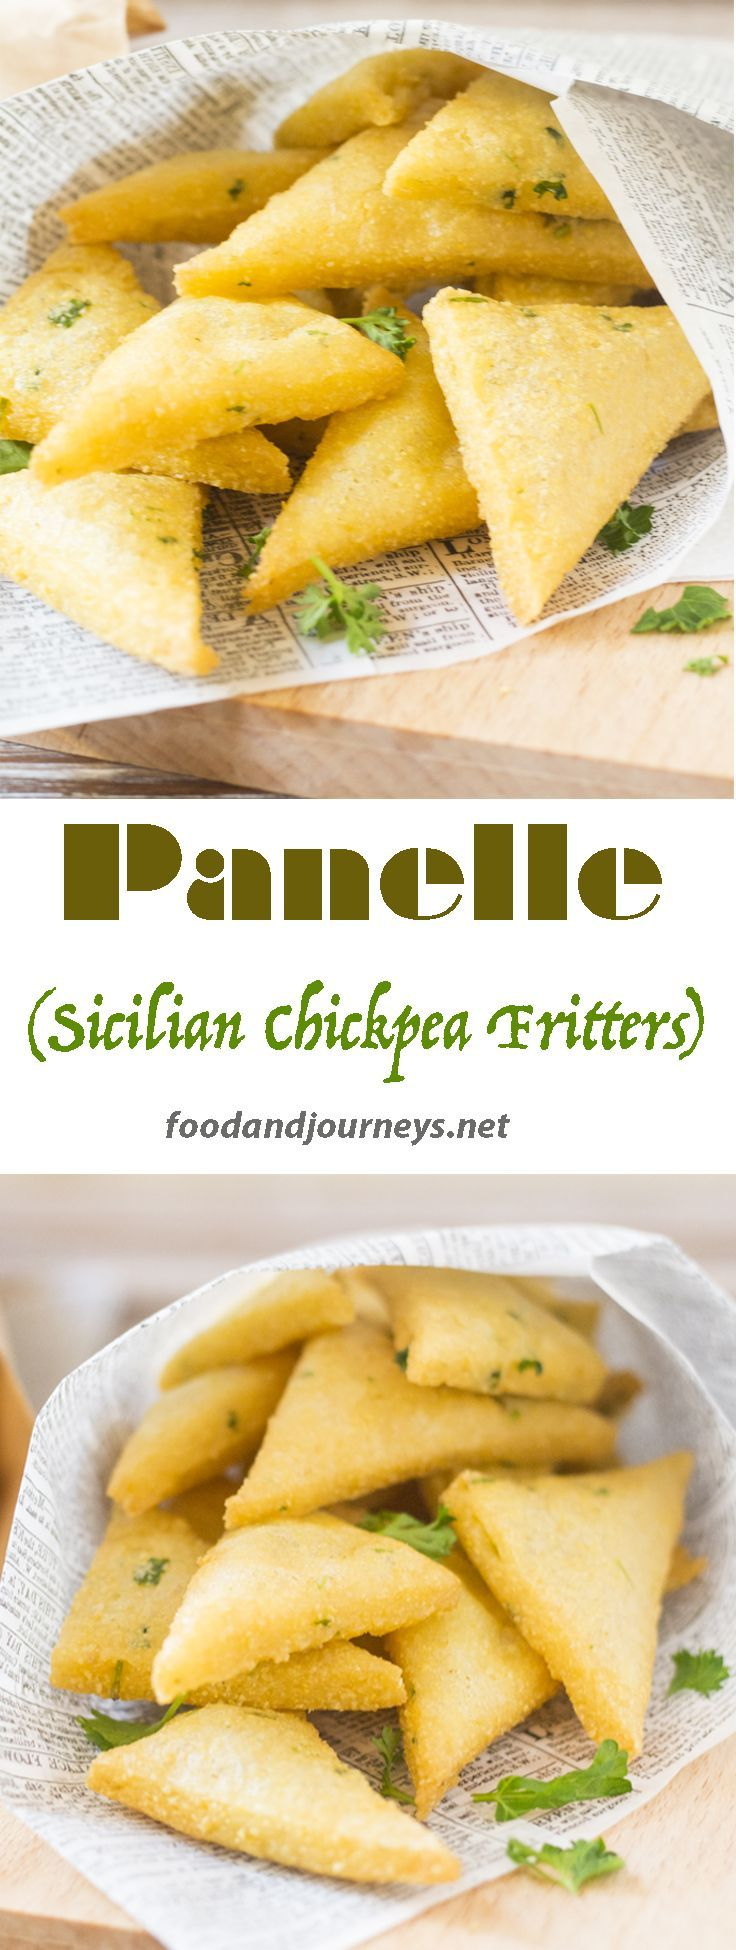 Panelle (Sicilian Chickpea Fritters). A popular Sicilian street food that can also be served as an appetizer or a sandwich. They're made of chickpeas, so they're good for vegetarians too!